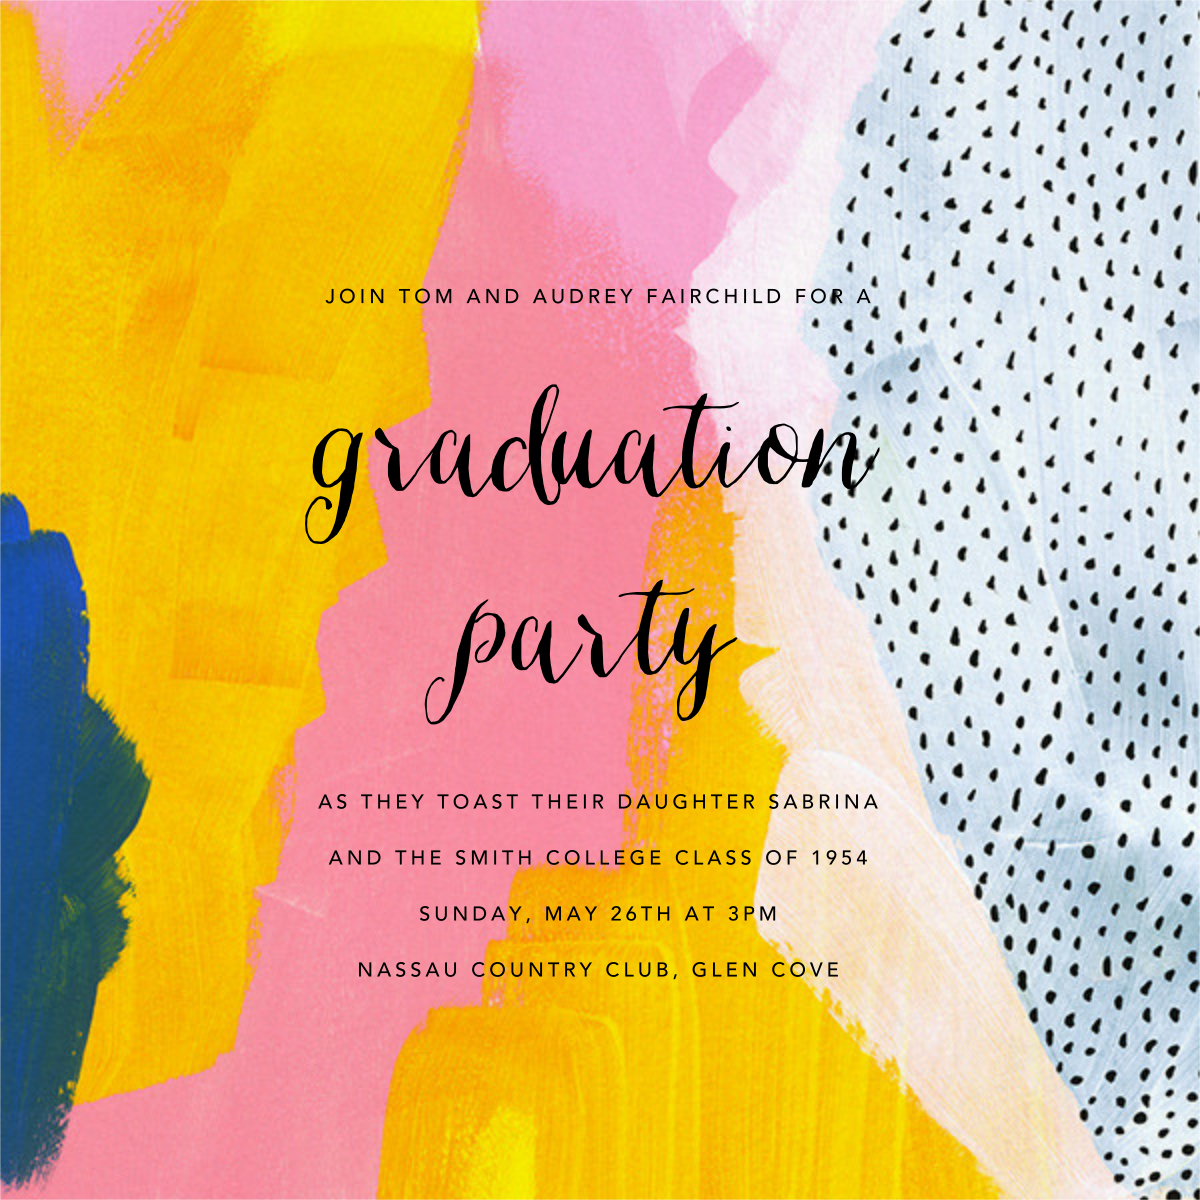 Sundry Strokes - Ashley G - Graduation party